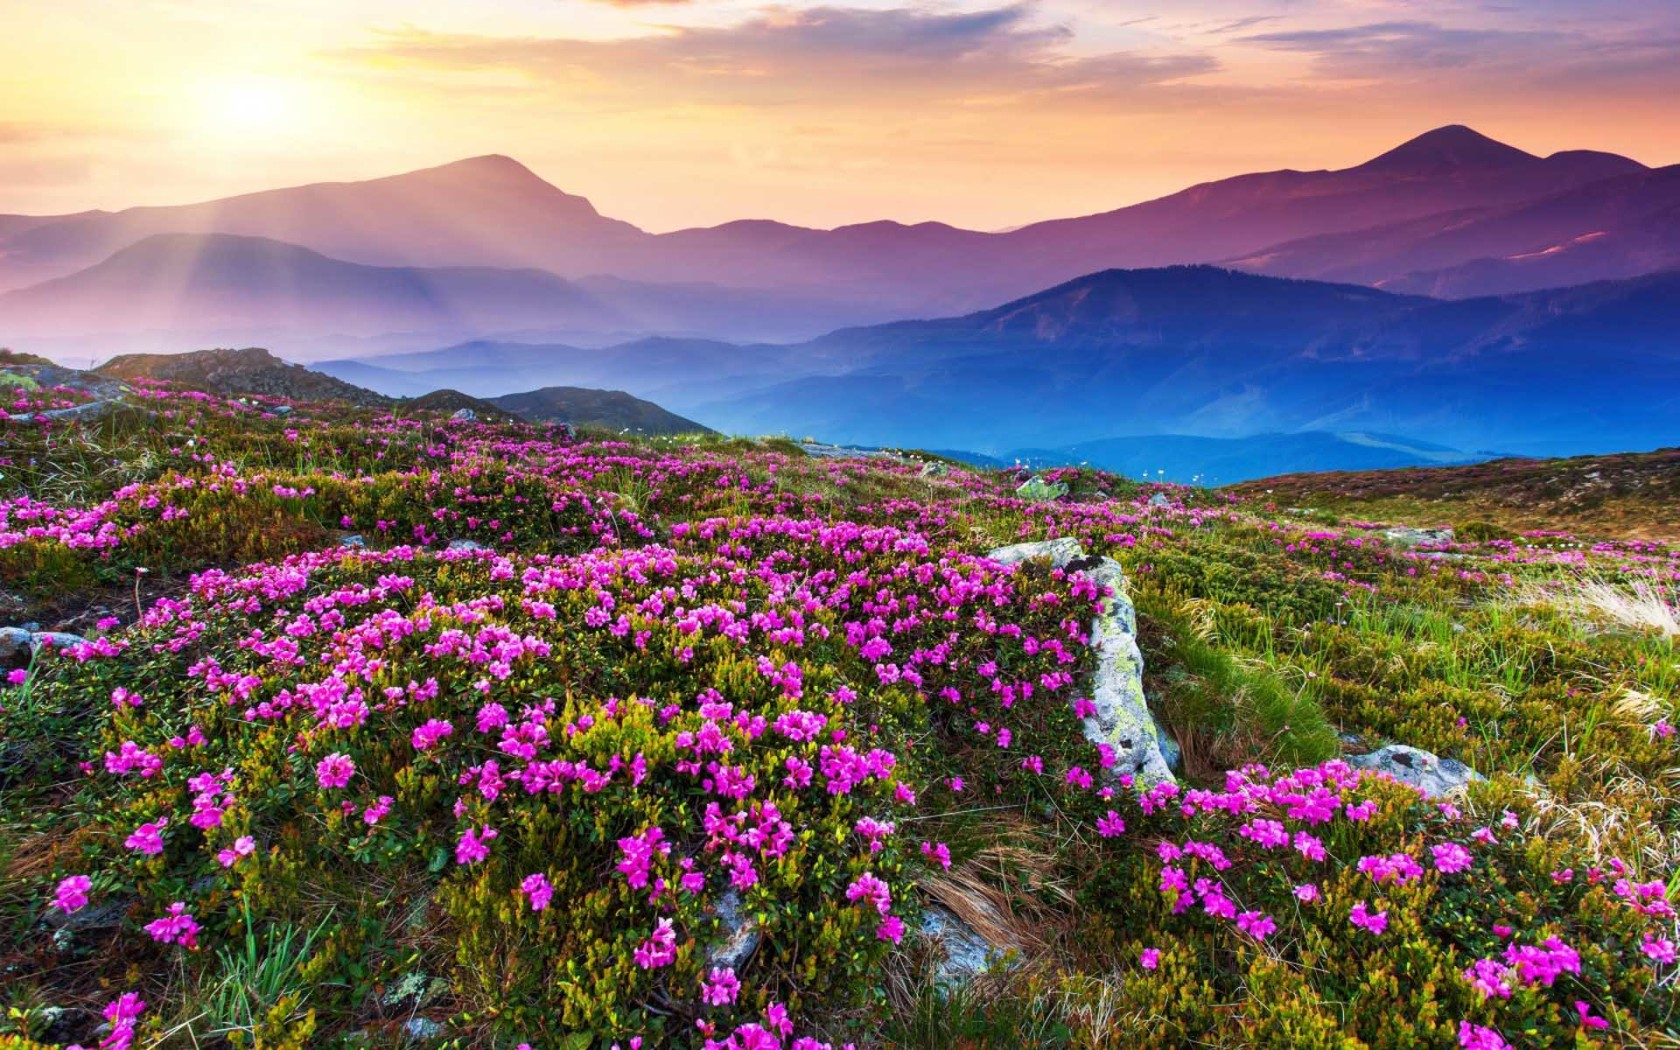 valley-of-flowers-wallpapers-1680x1050 - The Golden Scope